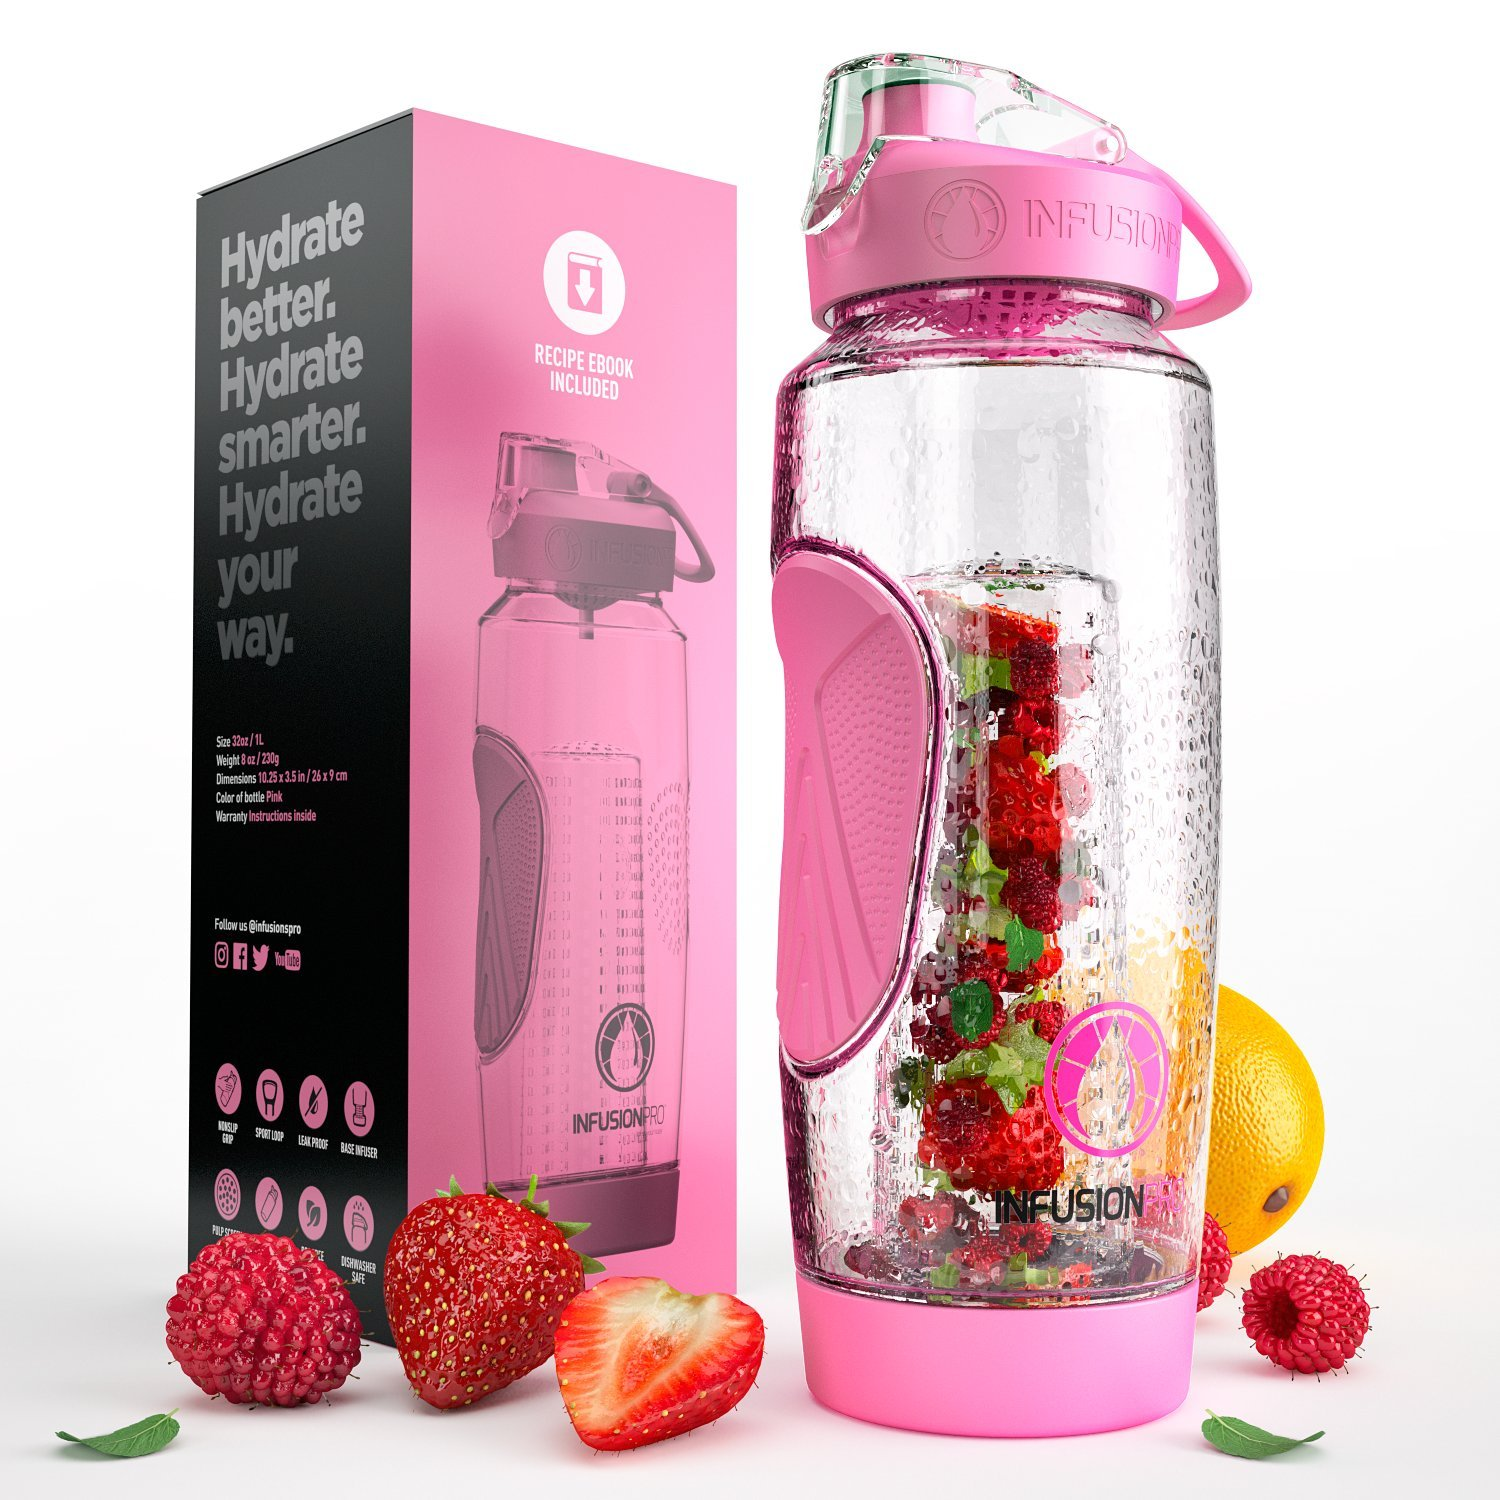 Infusion Pro 32 oz. Water Infuser Bottles Insulated Sleeve & Infused Water eBook :: Bottom Loading, Large Cage More Flavor & Pulp Strainer :: Delicious, Healthy Way to up Your Water Intake